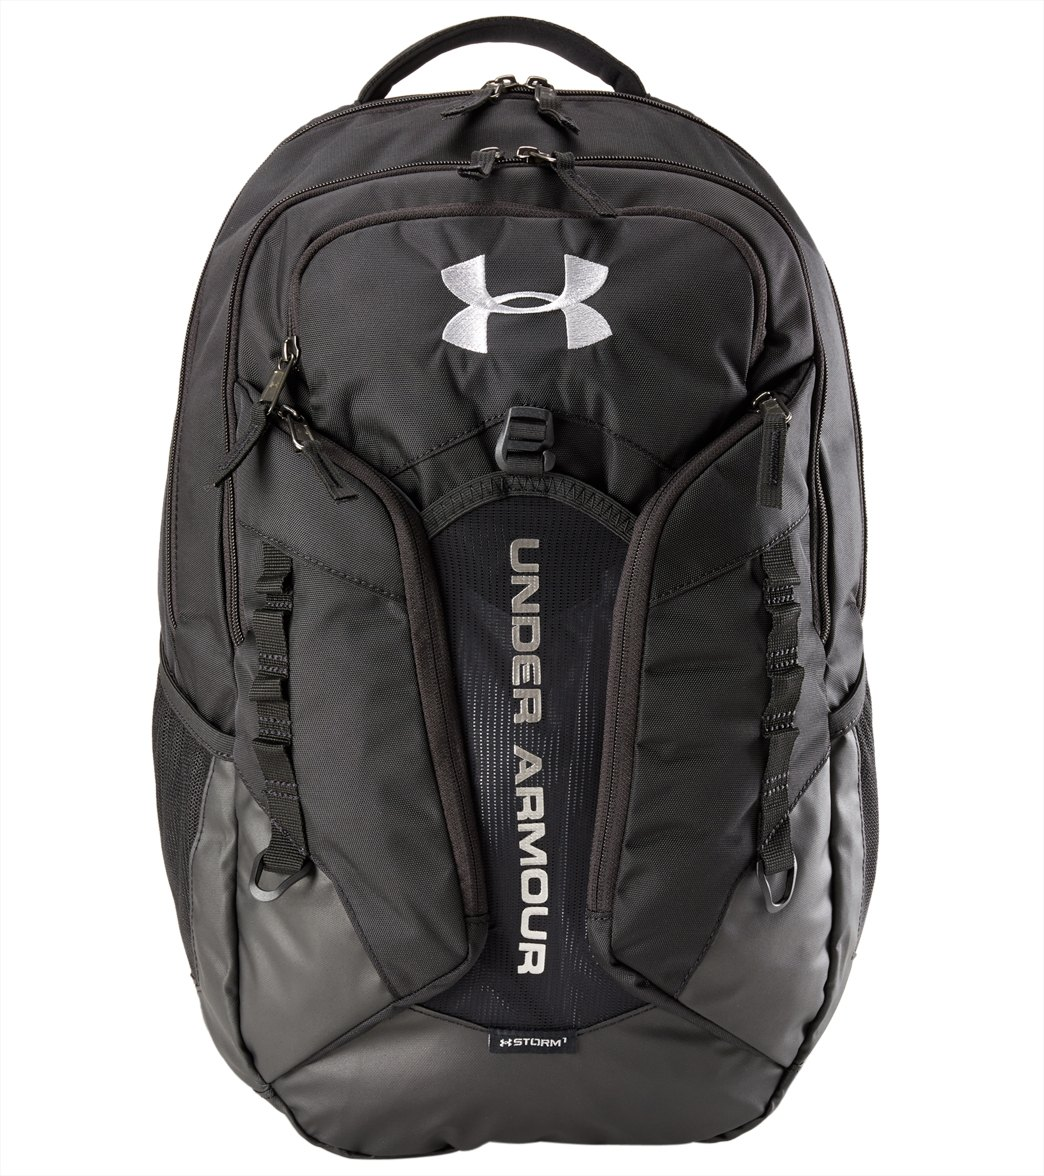 new styles 8661a 52220 Under Armour Men s Contender Backpack at SwimOutlet.com - Free Shipping